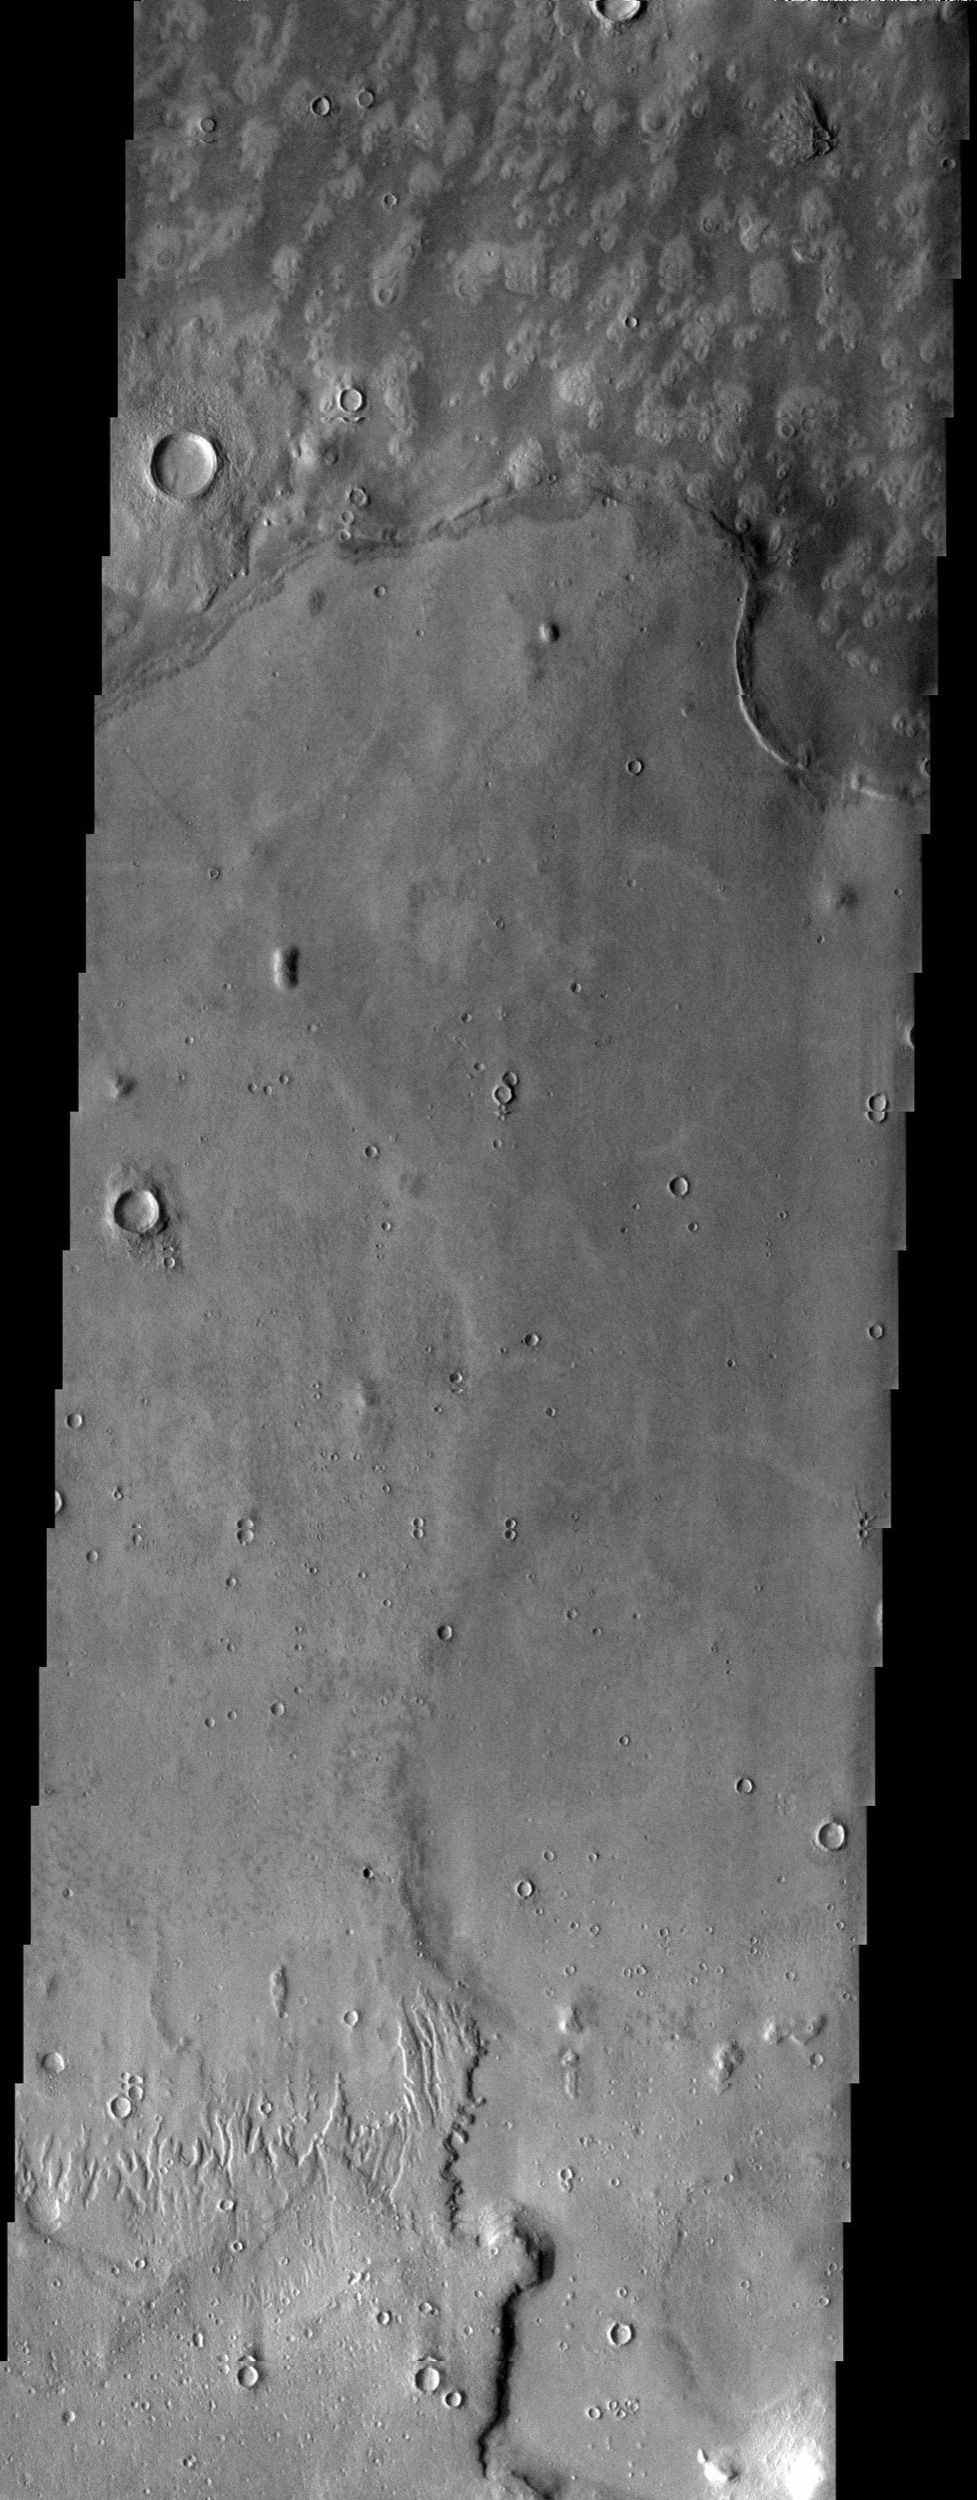 Embayment relationship is displayed where mottled plains material laps up against higher standing plains material in this image from NASA's Mars Odyssey spacecraft. The embaying material could be lava or possibly mud.